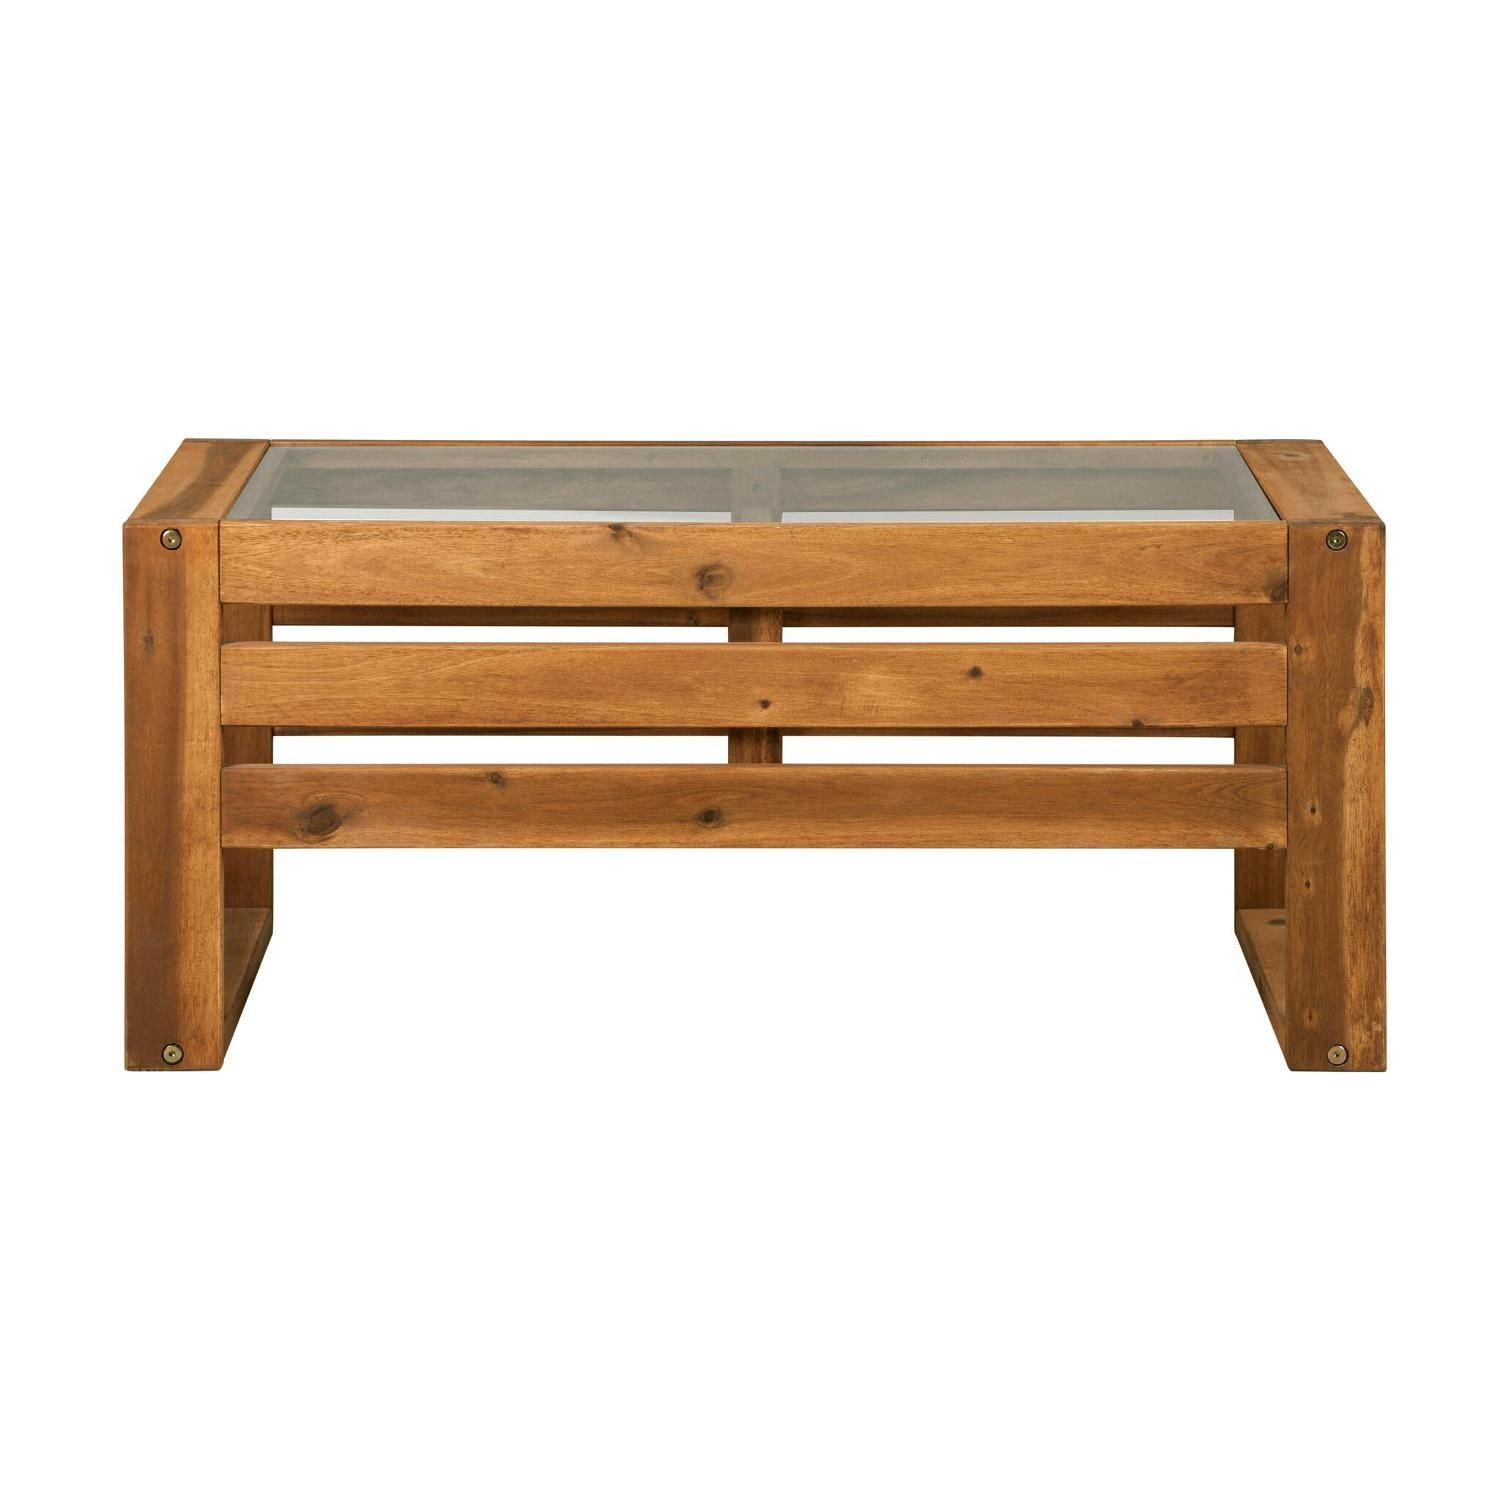 Walker Edison Hudson 36 X 20 Inch Rectangular Acacia Patio Coffee Table By Owosctbr Glass Top Coffee Table Coffee Table Rectangle Solid Wood Coffee Table